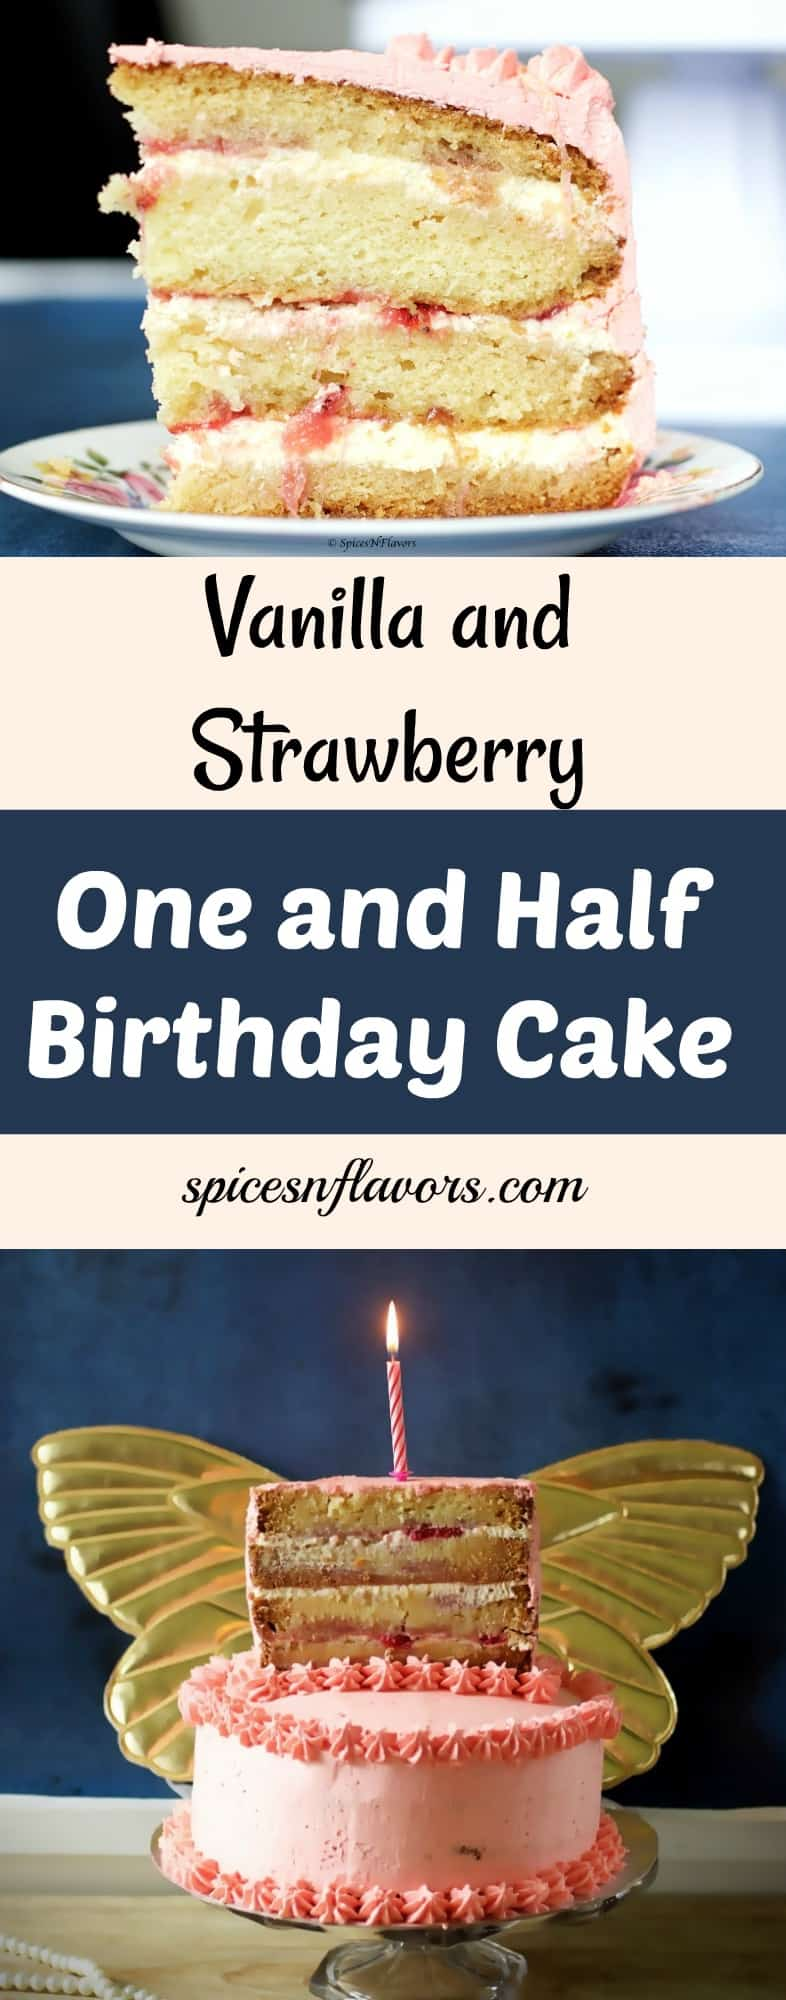 one and half cake one and half birthday cake vanilla and strawberry cake eggless strawberry cake birthday cake